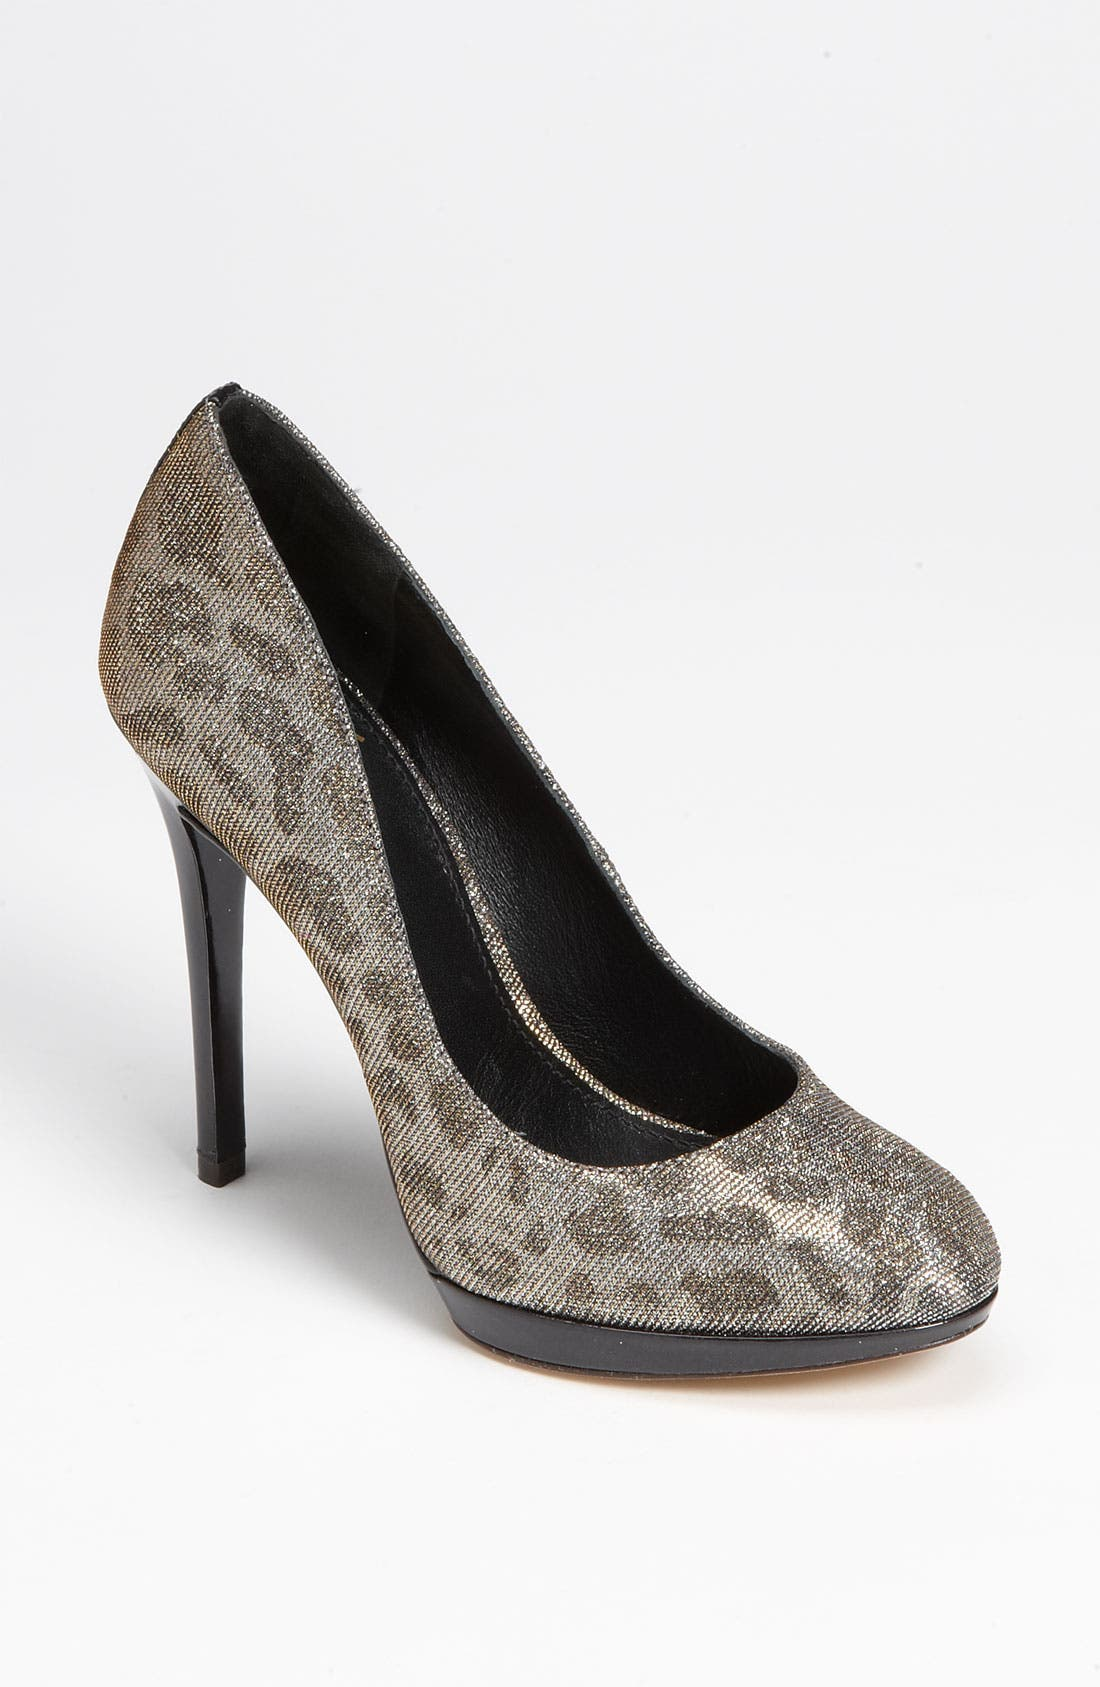 Alternate Image 1 Selected - B Brian Atwood 'Frederique' Pump